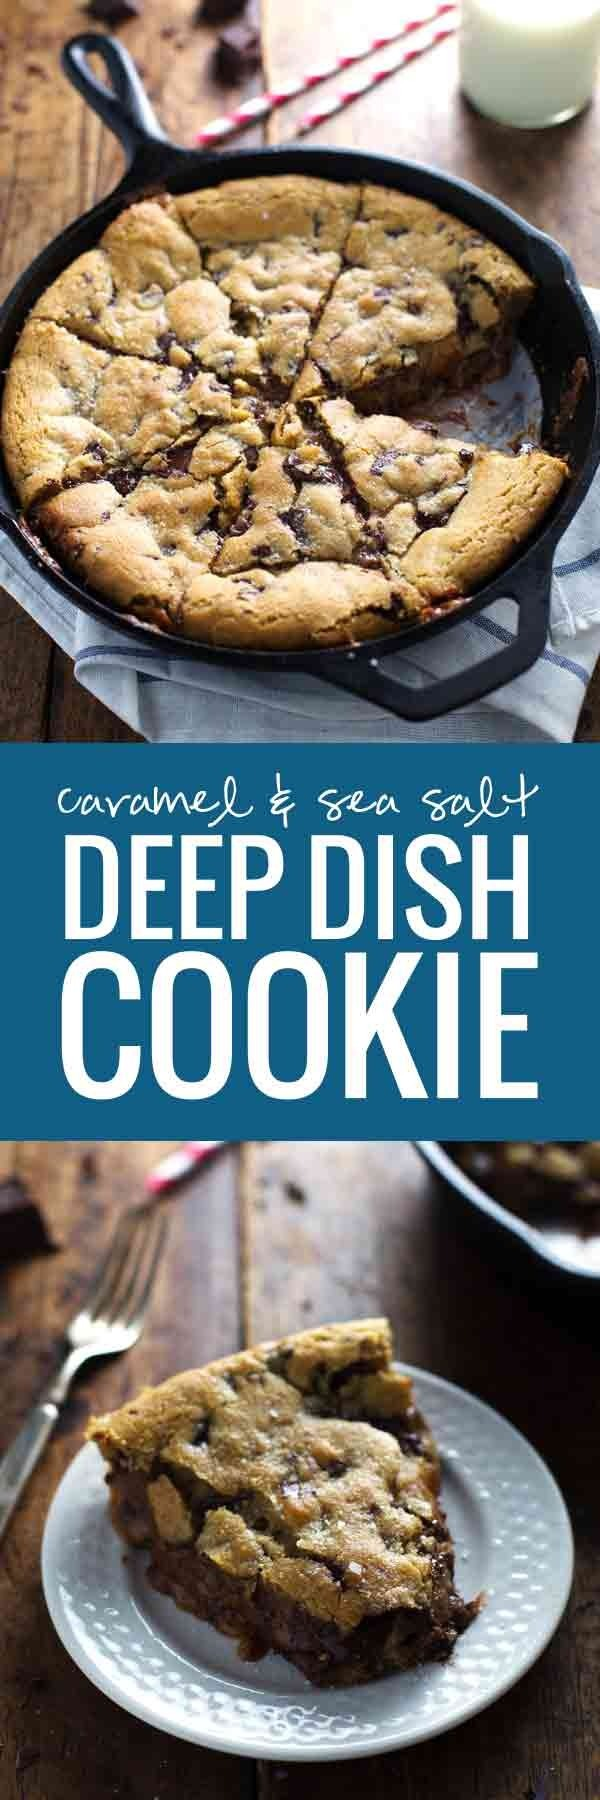 Deep Dish Chocolate Chip Cookie With Caramel And Sea Salt Recipe